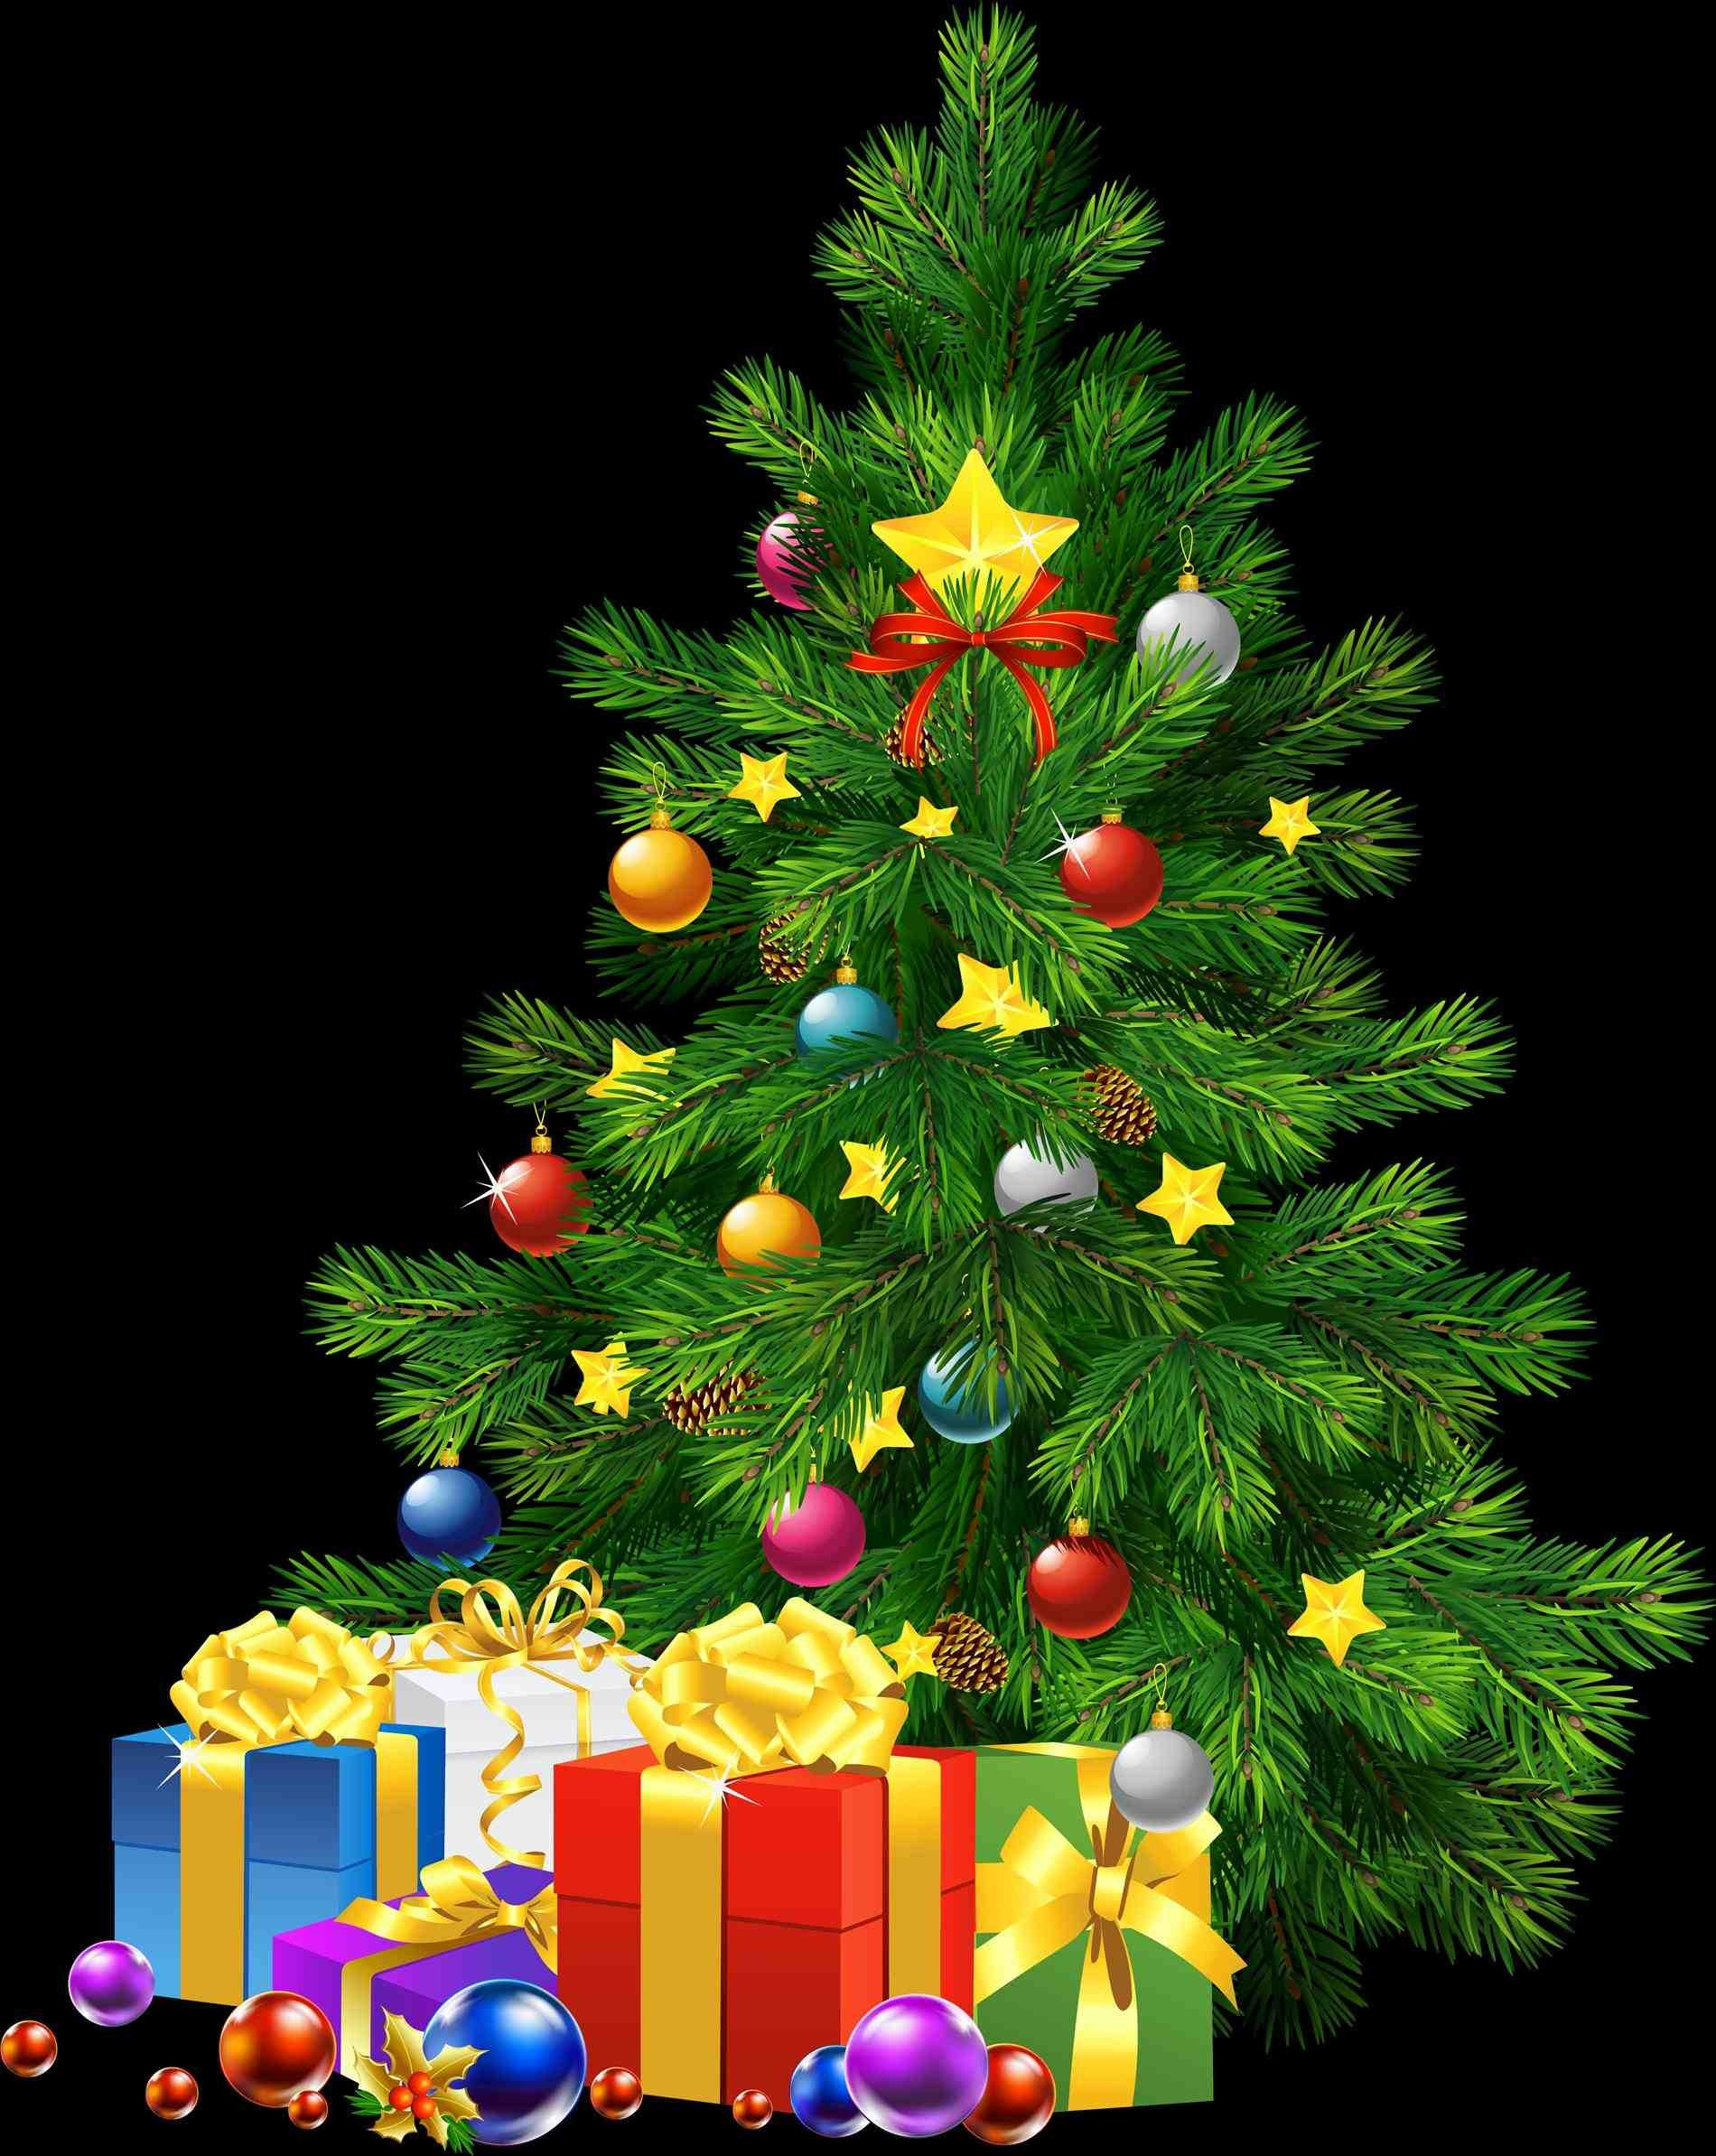 Large Christmas Backgrounds 58 Images